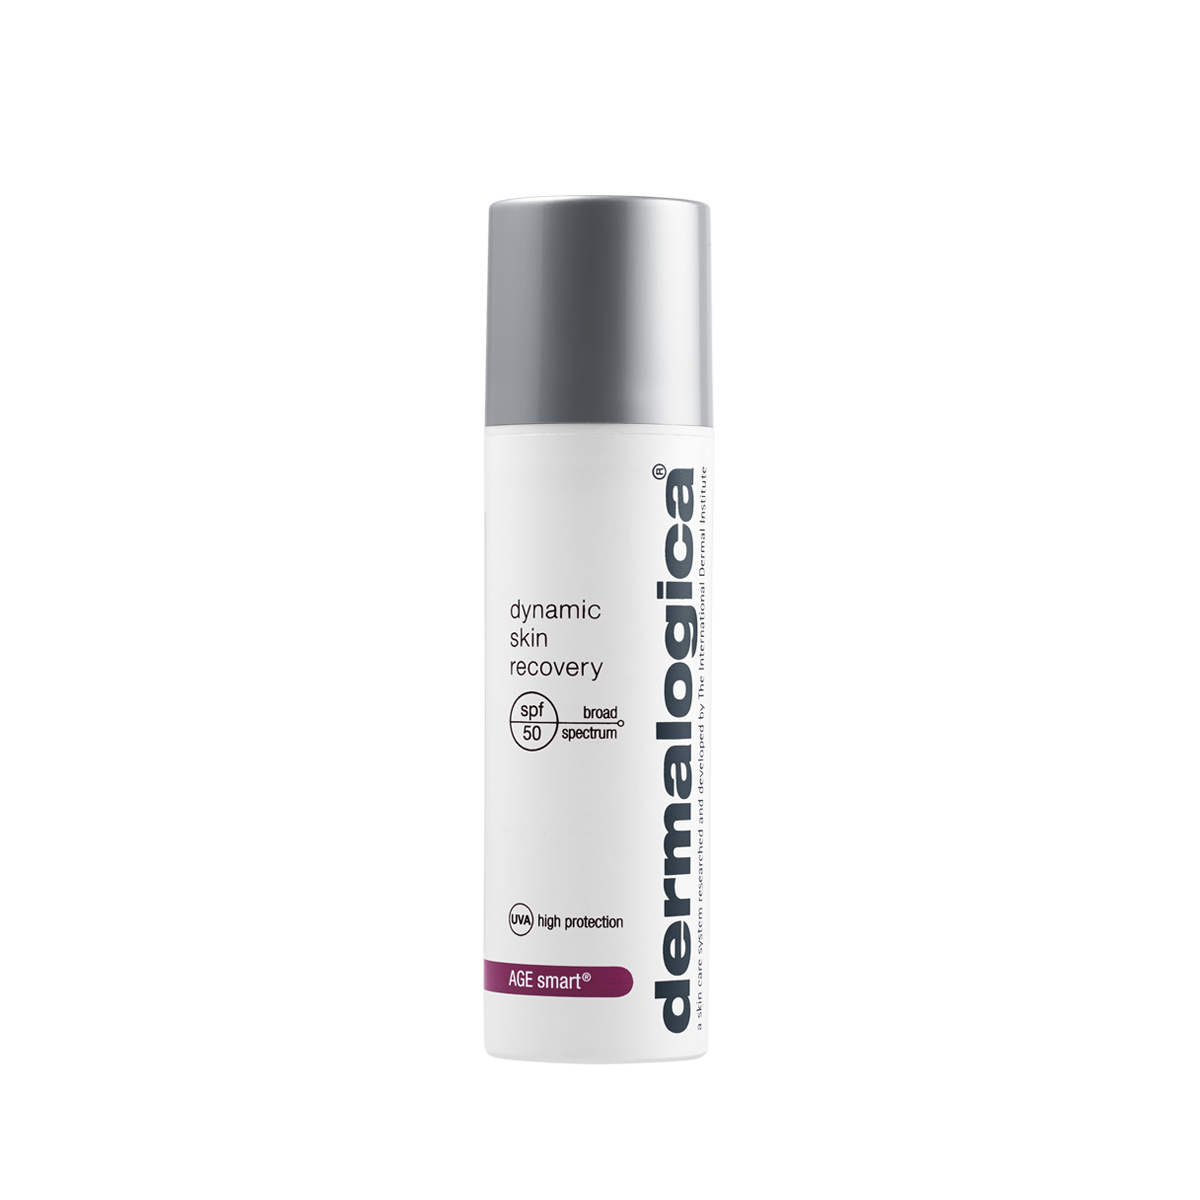 AGE Smart Dynamic Skin Recovery SPF50 50ml-1